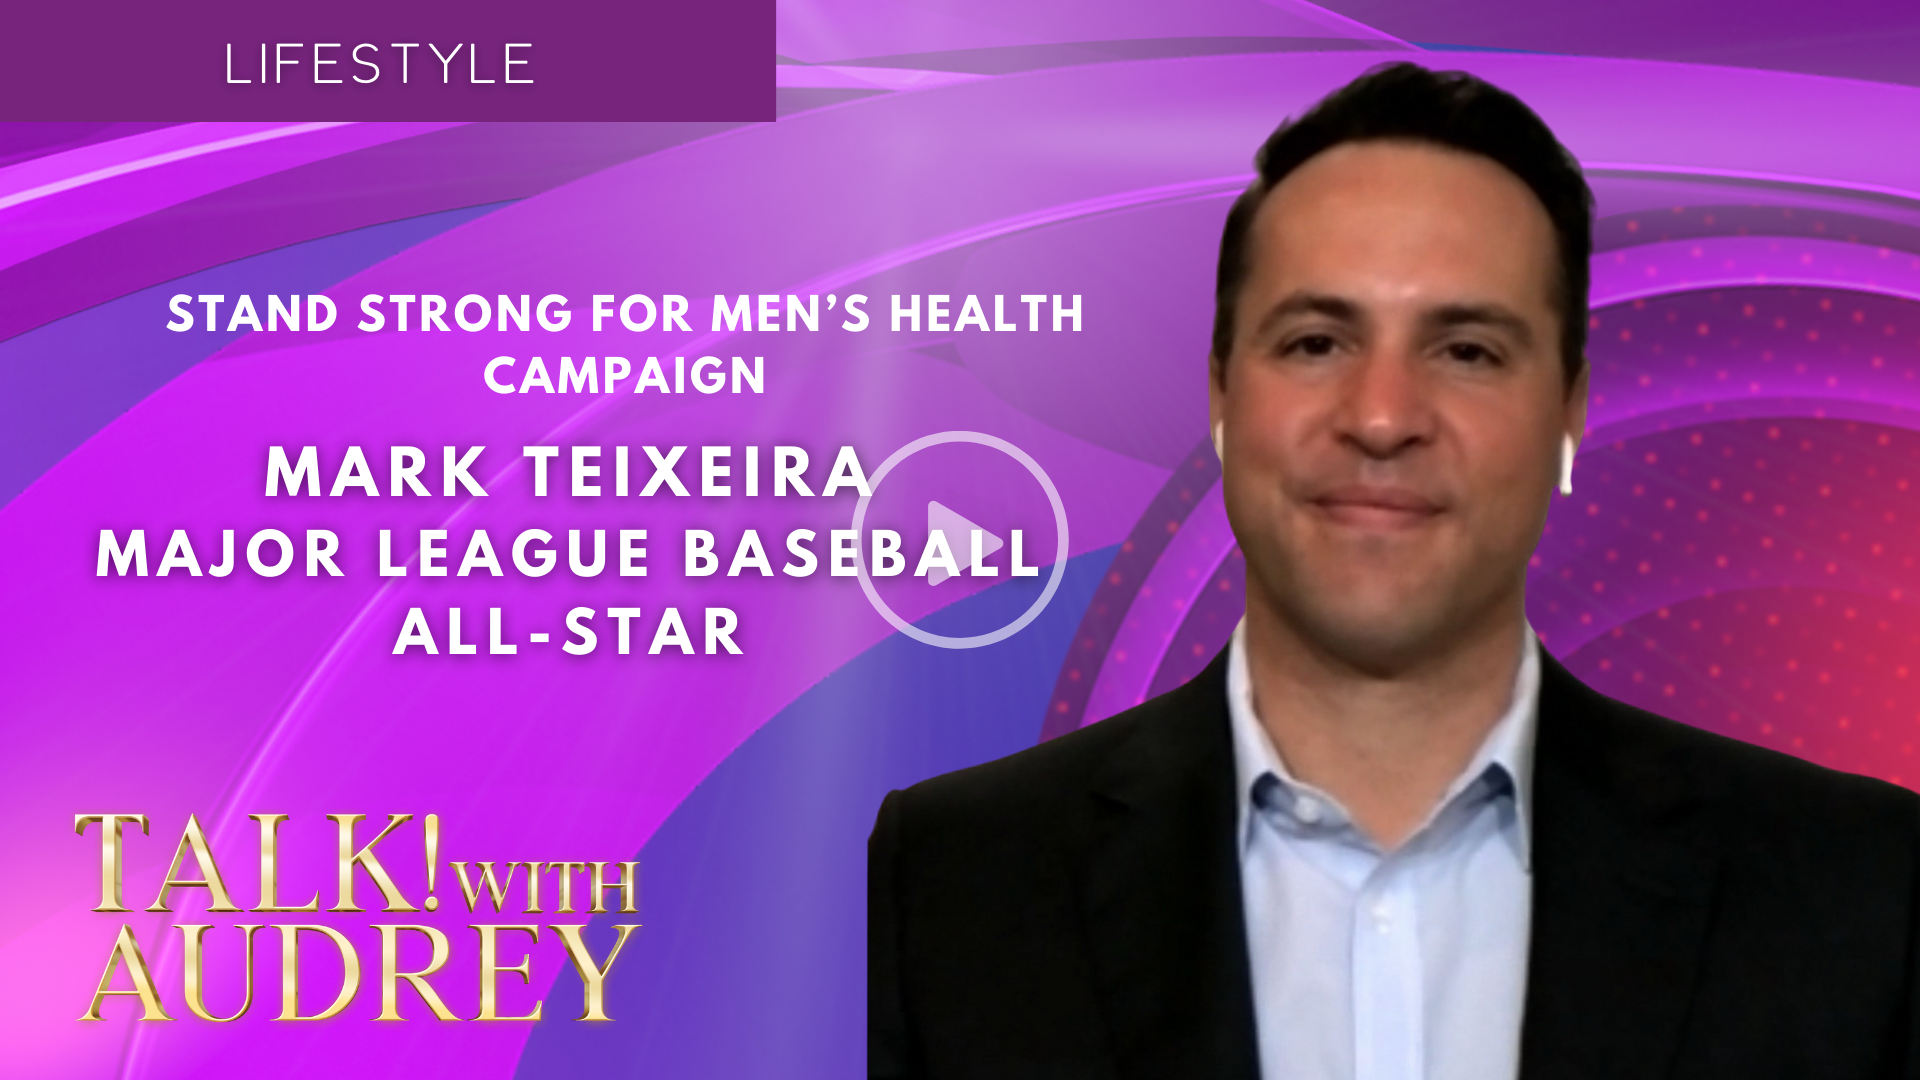 Mark Teixeira: Stand Strong for Men's Health Campaign